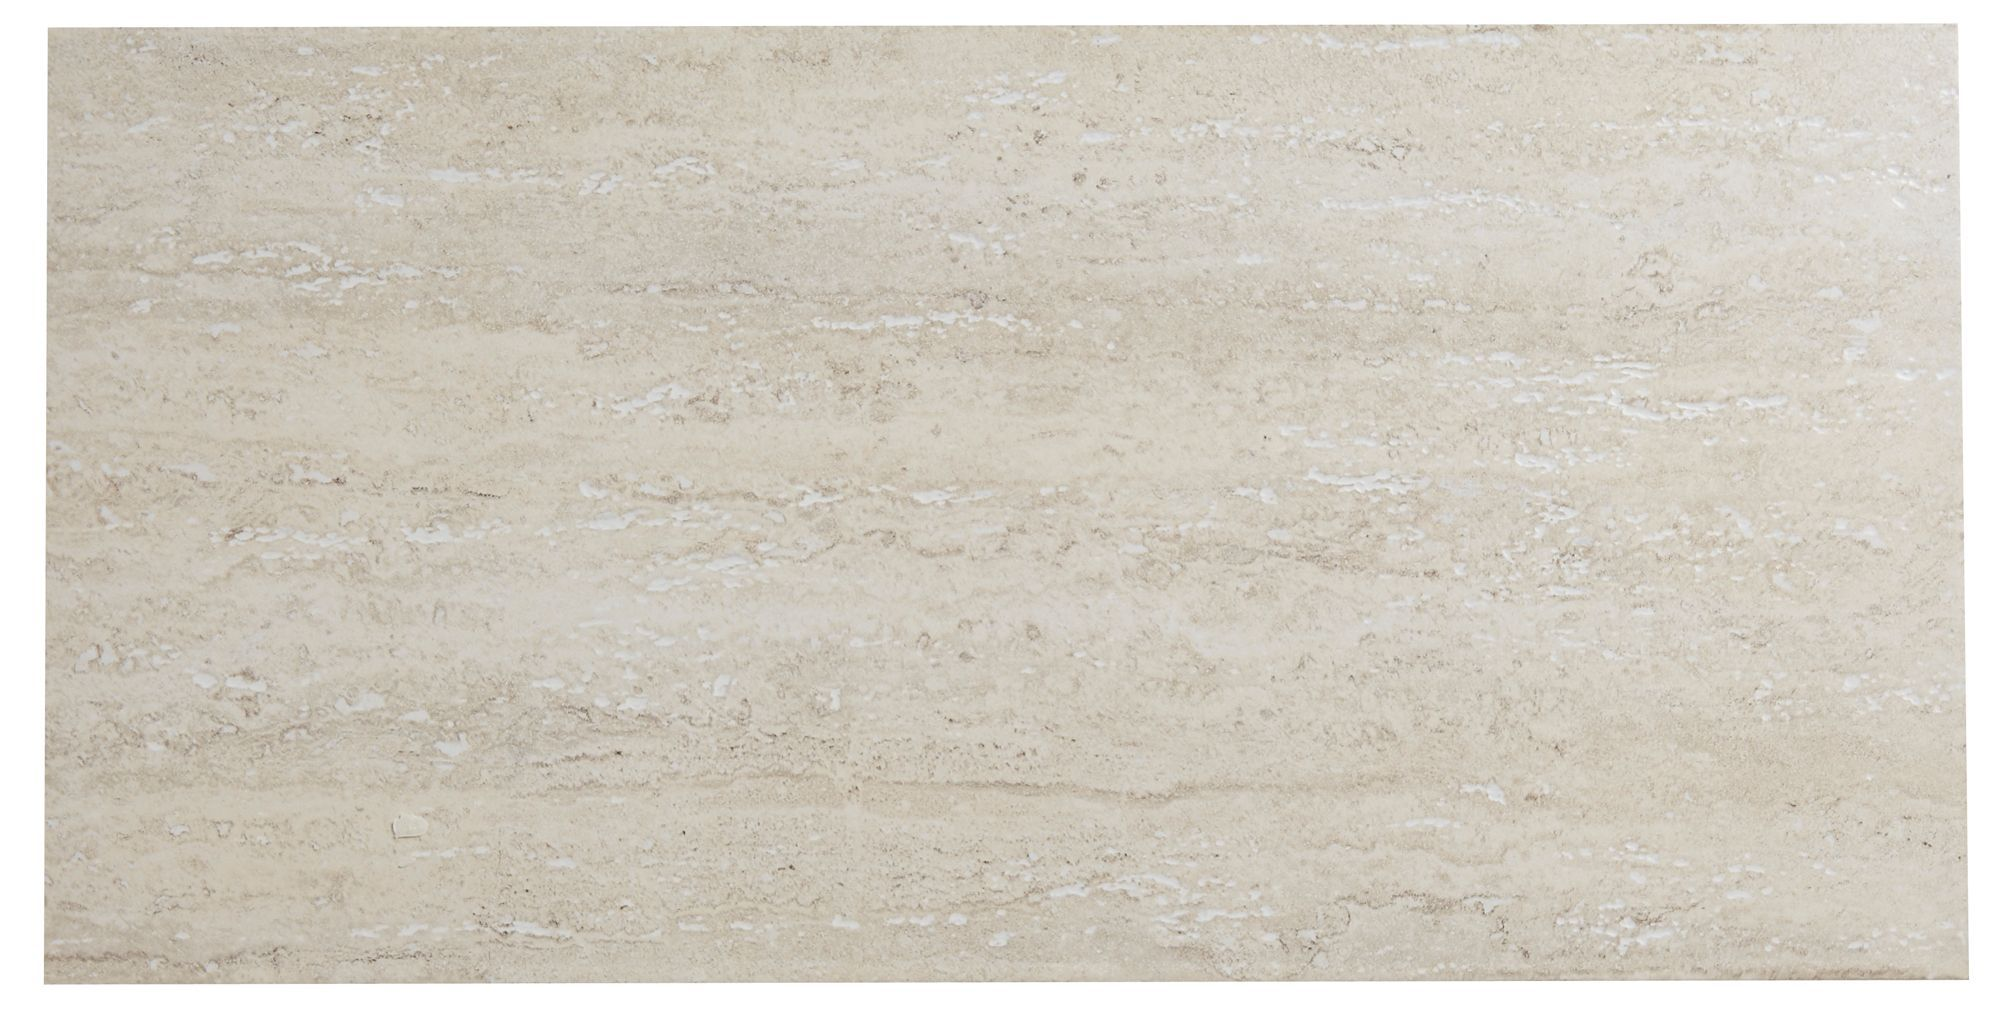 Kitchen Floor Tiles Bq Natura Beige Porcelain Wall Floor Tile Pack Of 6 L300mm W